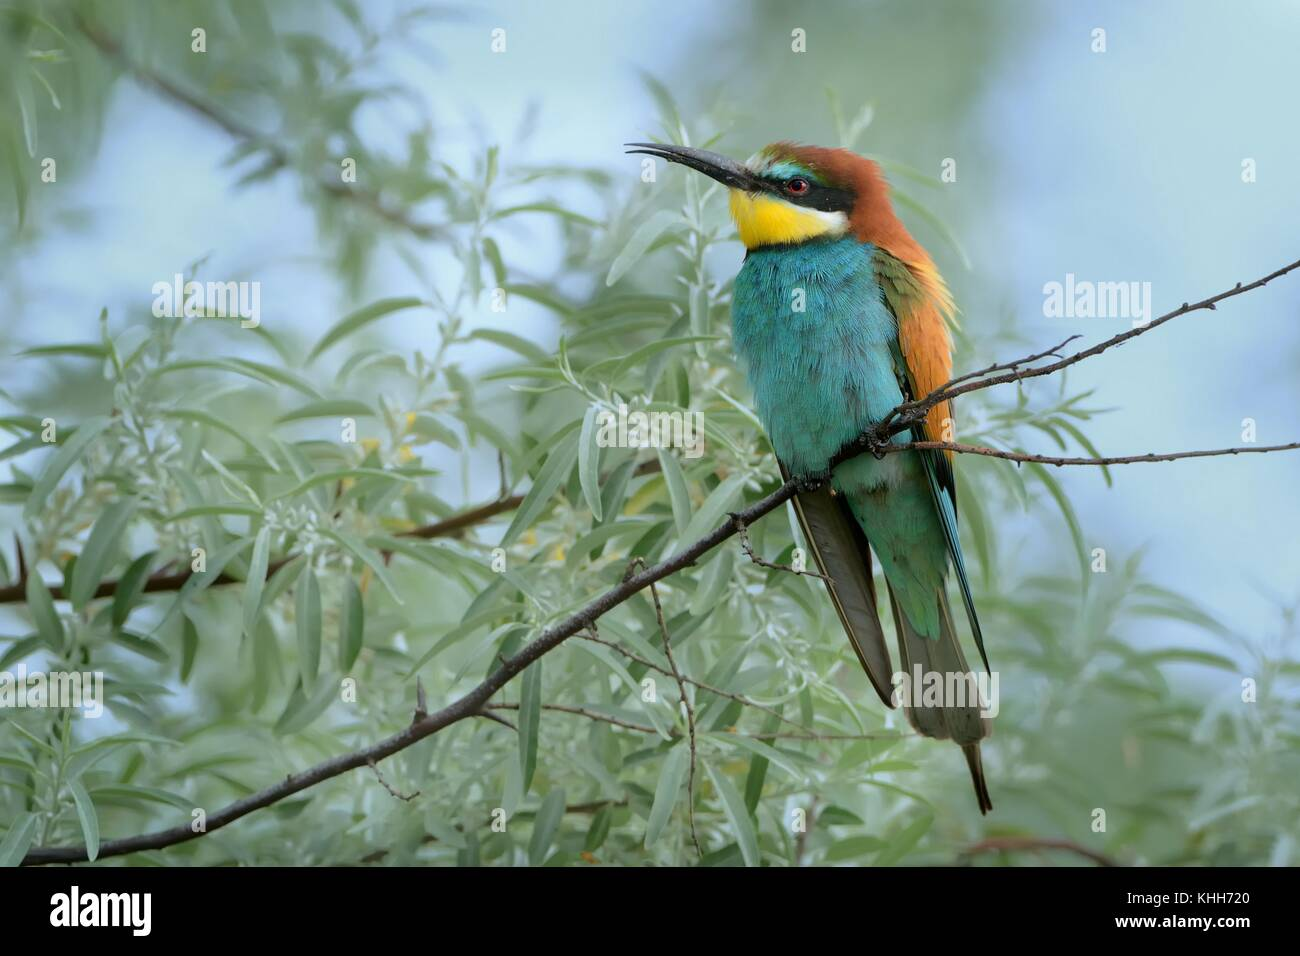 European Bee-eater (Merops apiaster) perched on a willow branch. - Stock Image